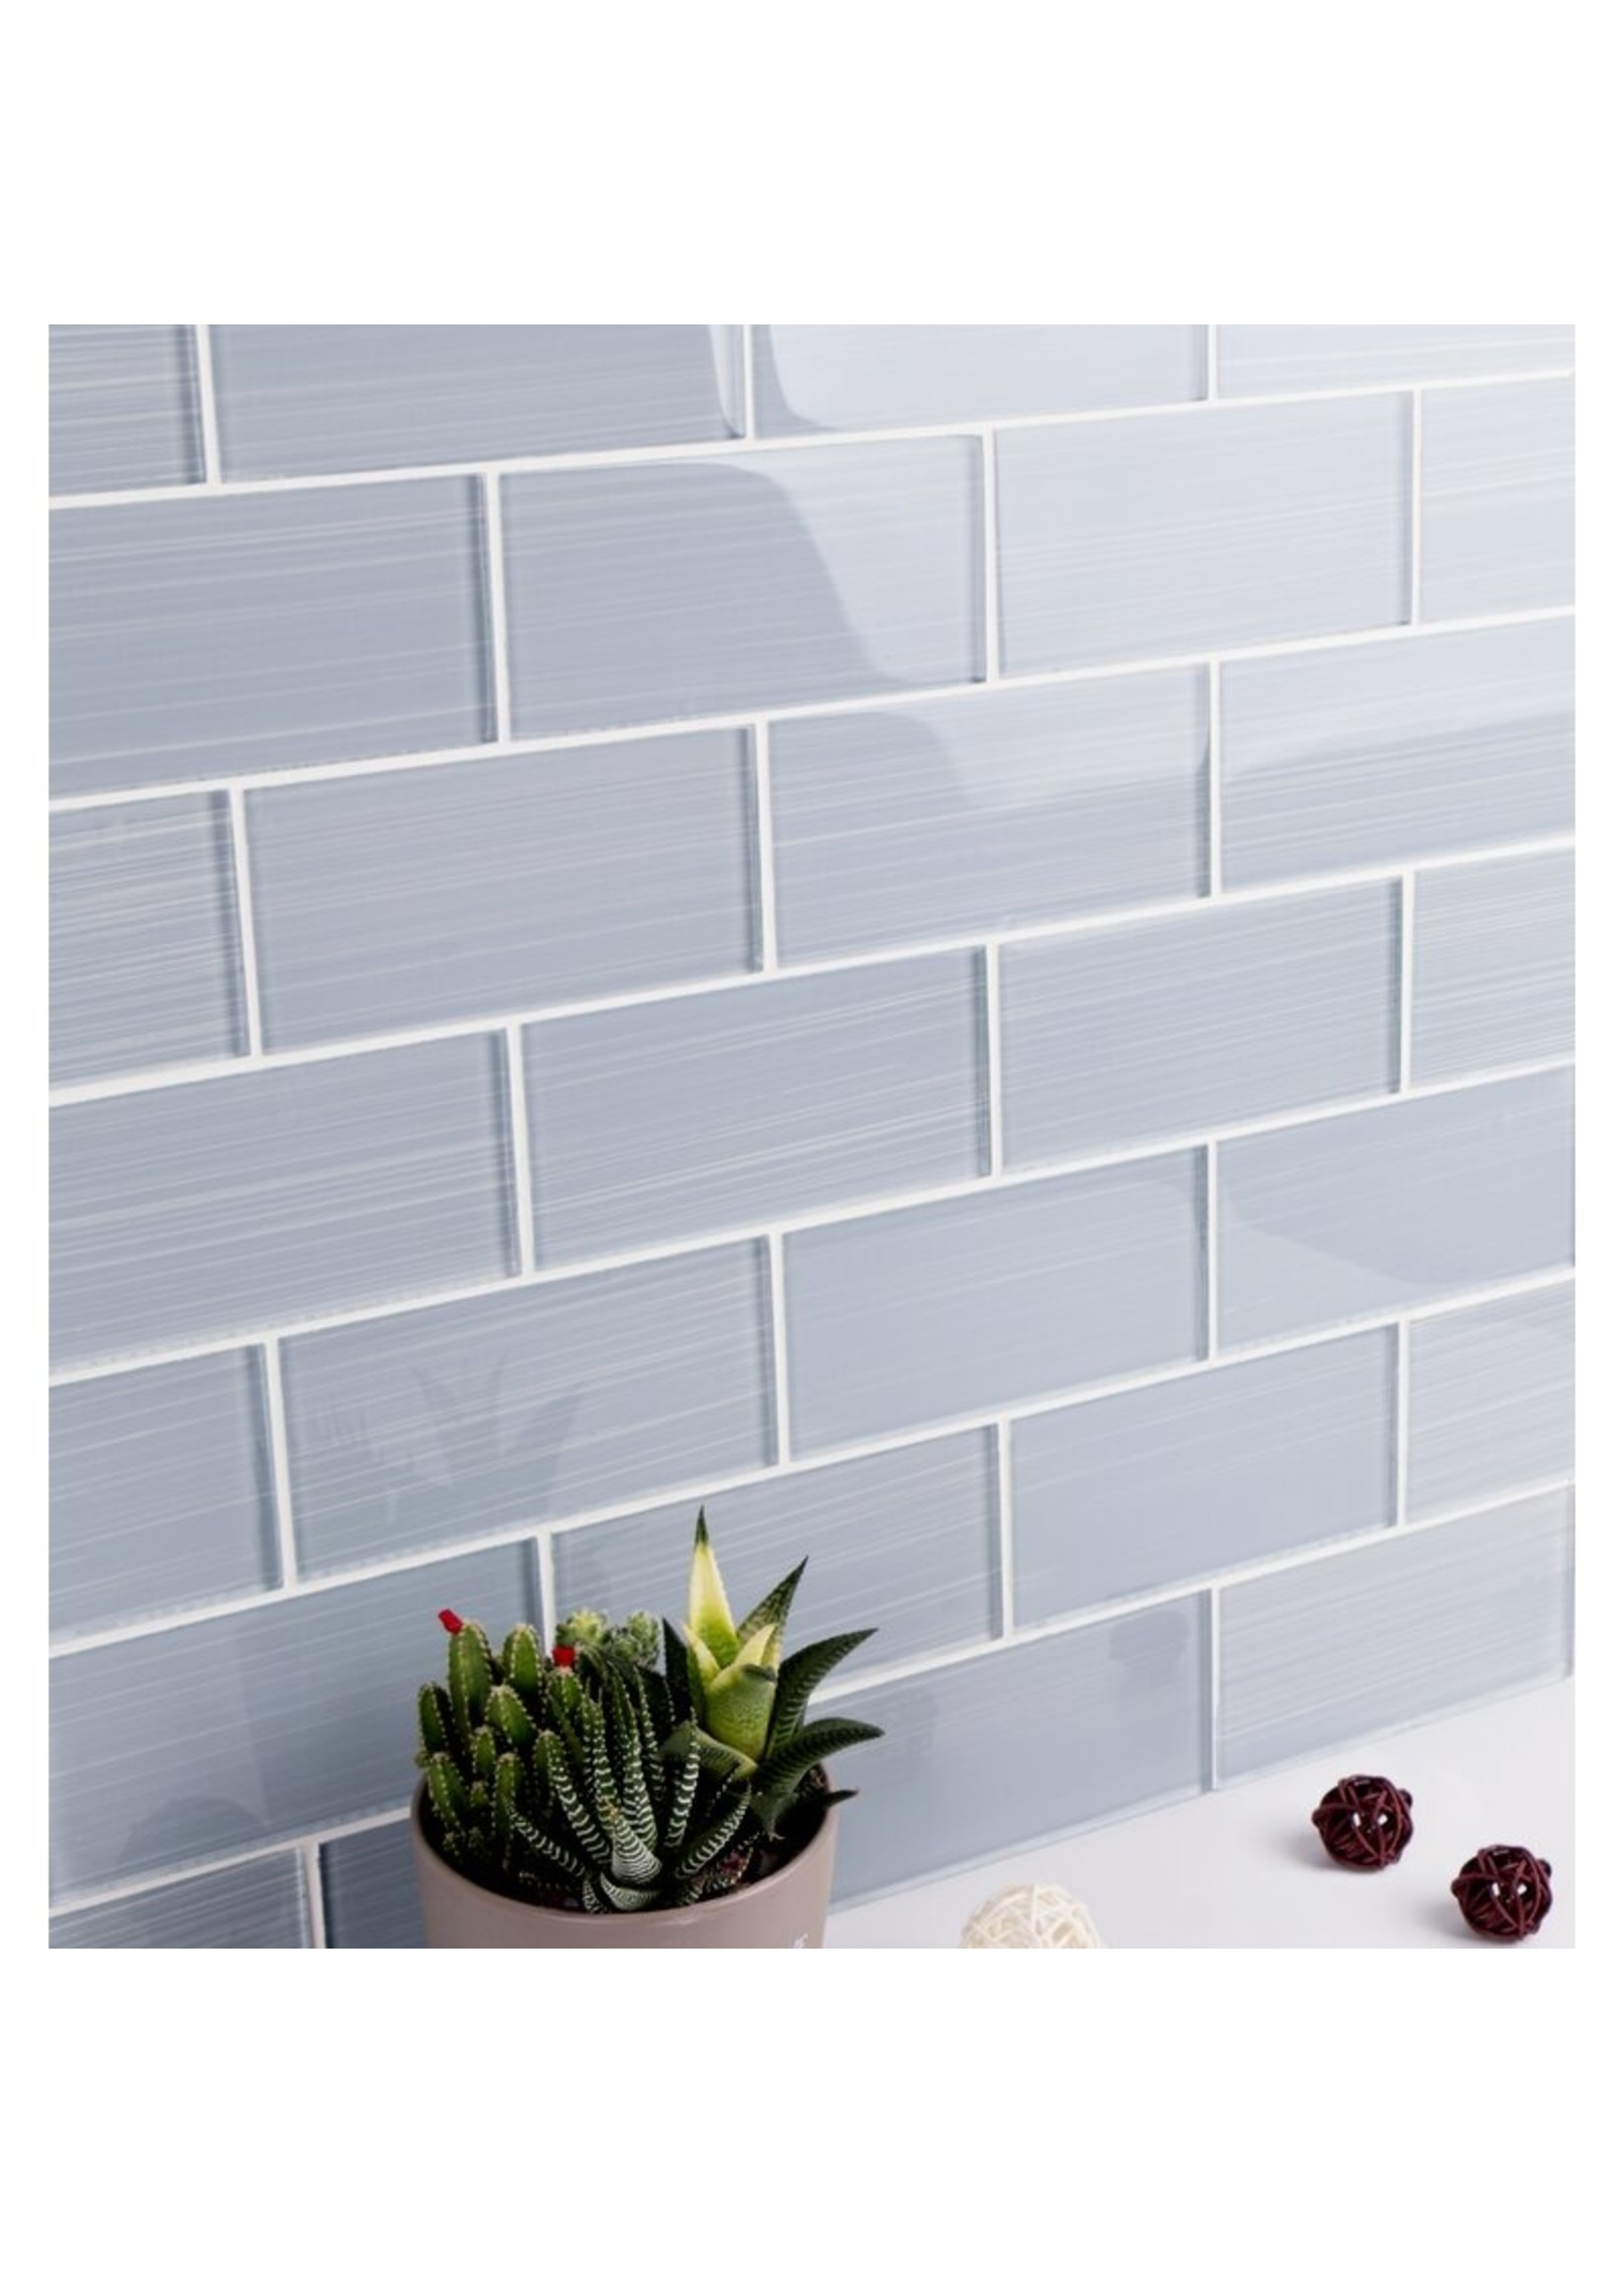 """*Hand Painted Series 3"""" x 6"""" Glass Peel & Stick Subway Tile - 64 Tiles - Soft Gray"""